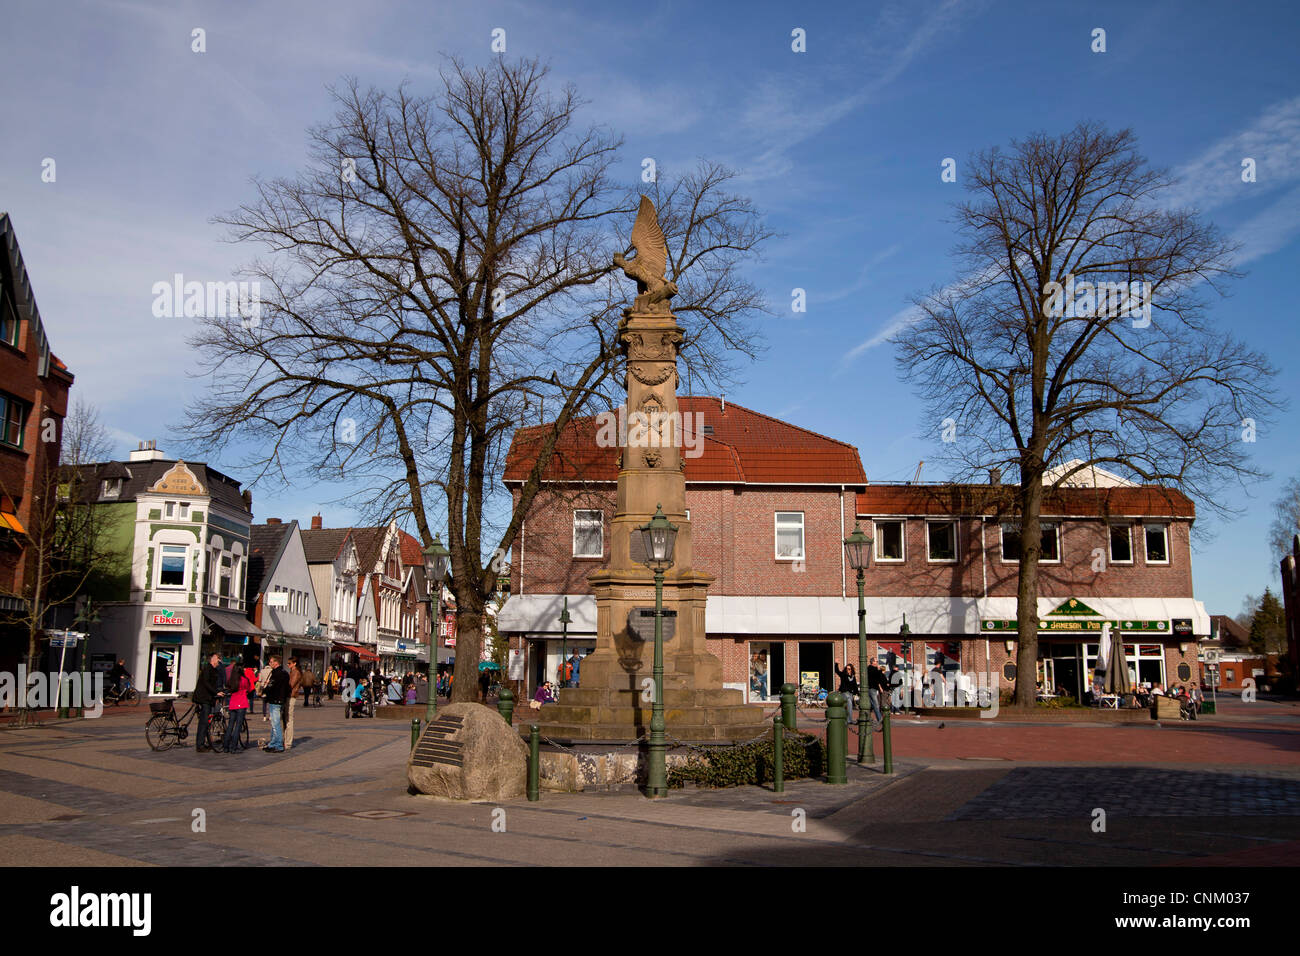 war monument at Mühlenstraße Emden, East Frisia, Lower Saxony, Germany - Stock Image